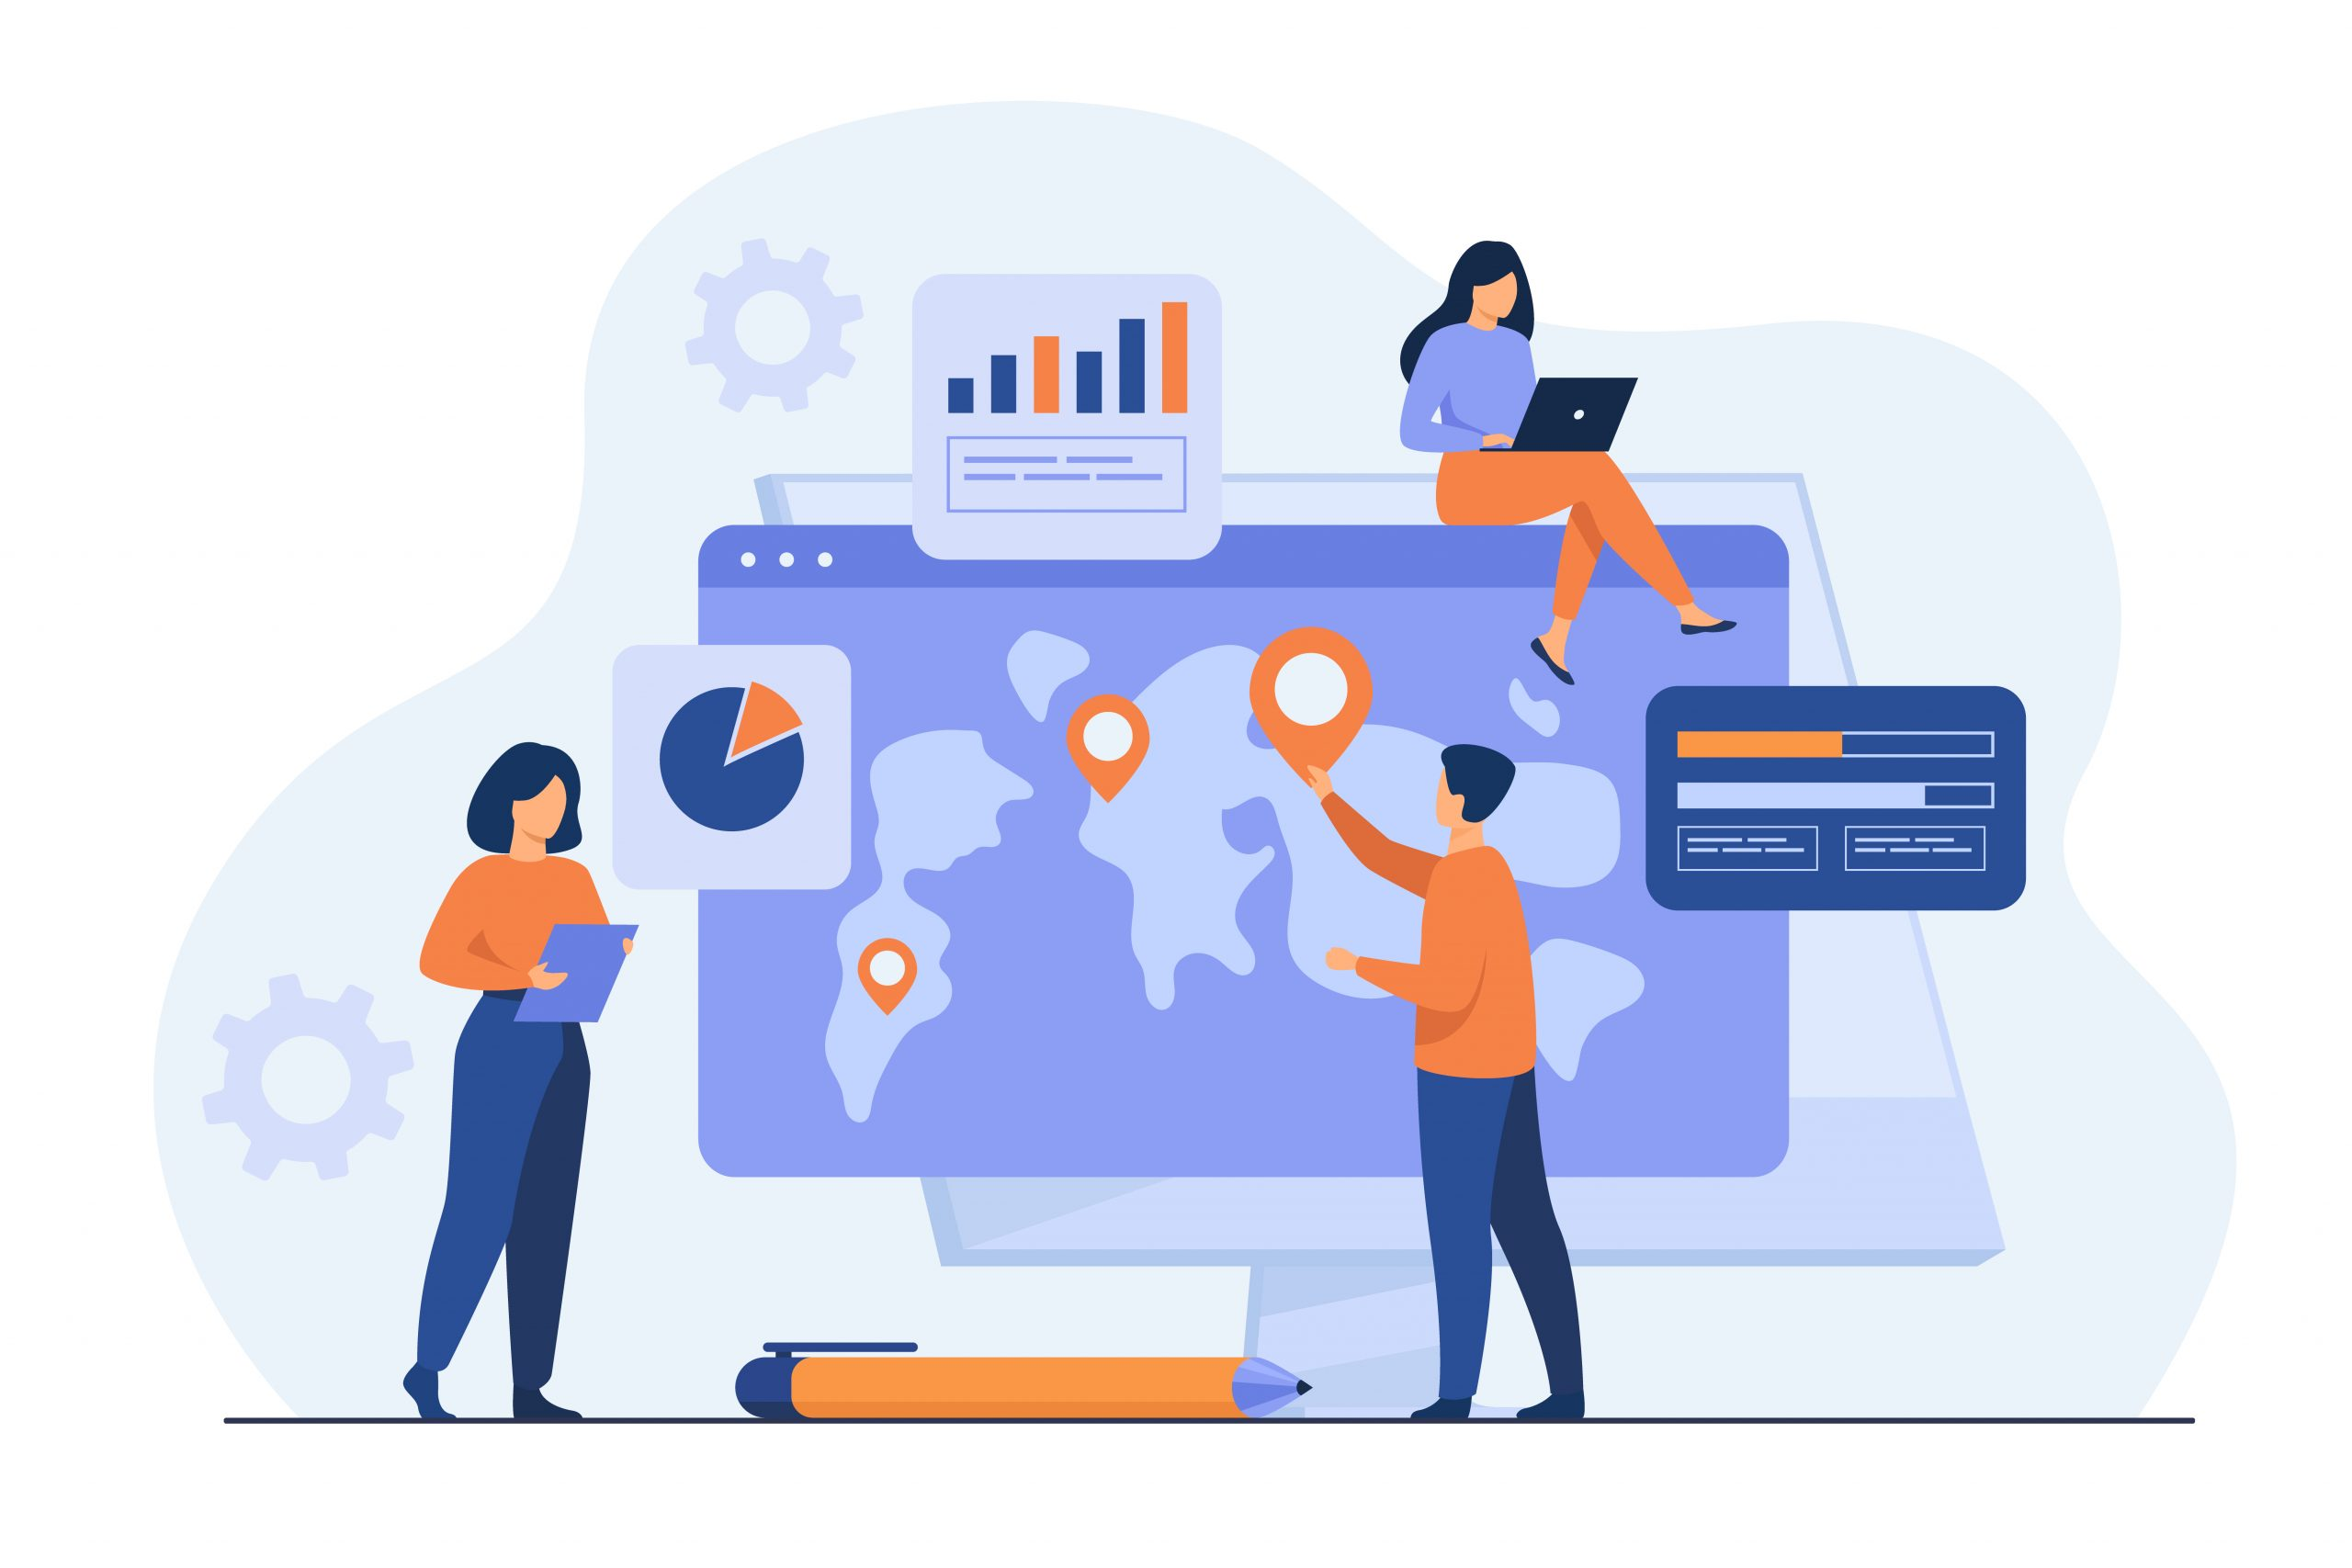 What Are Collaboration Tools?